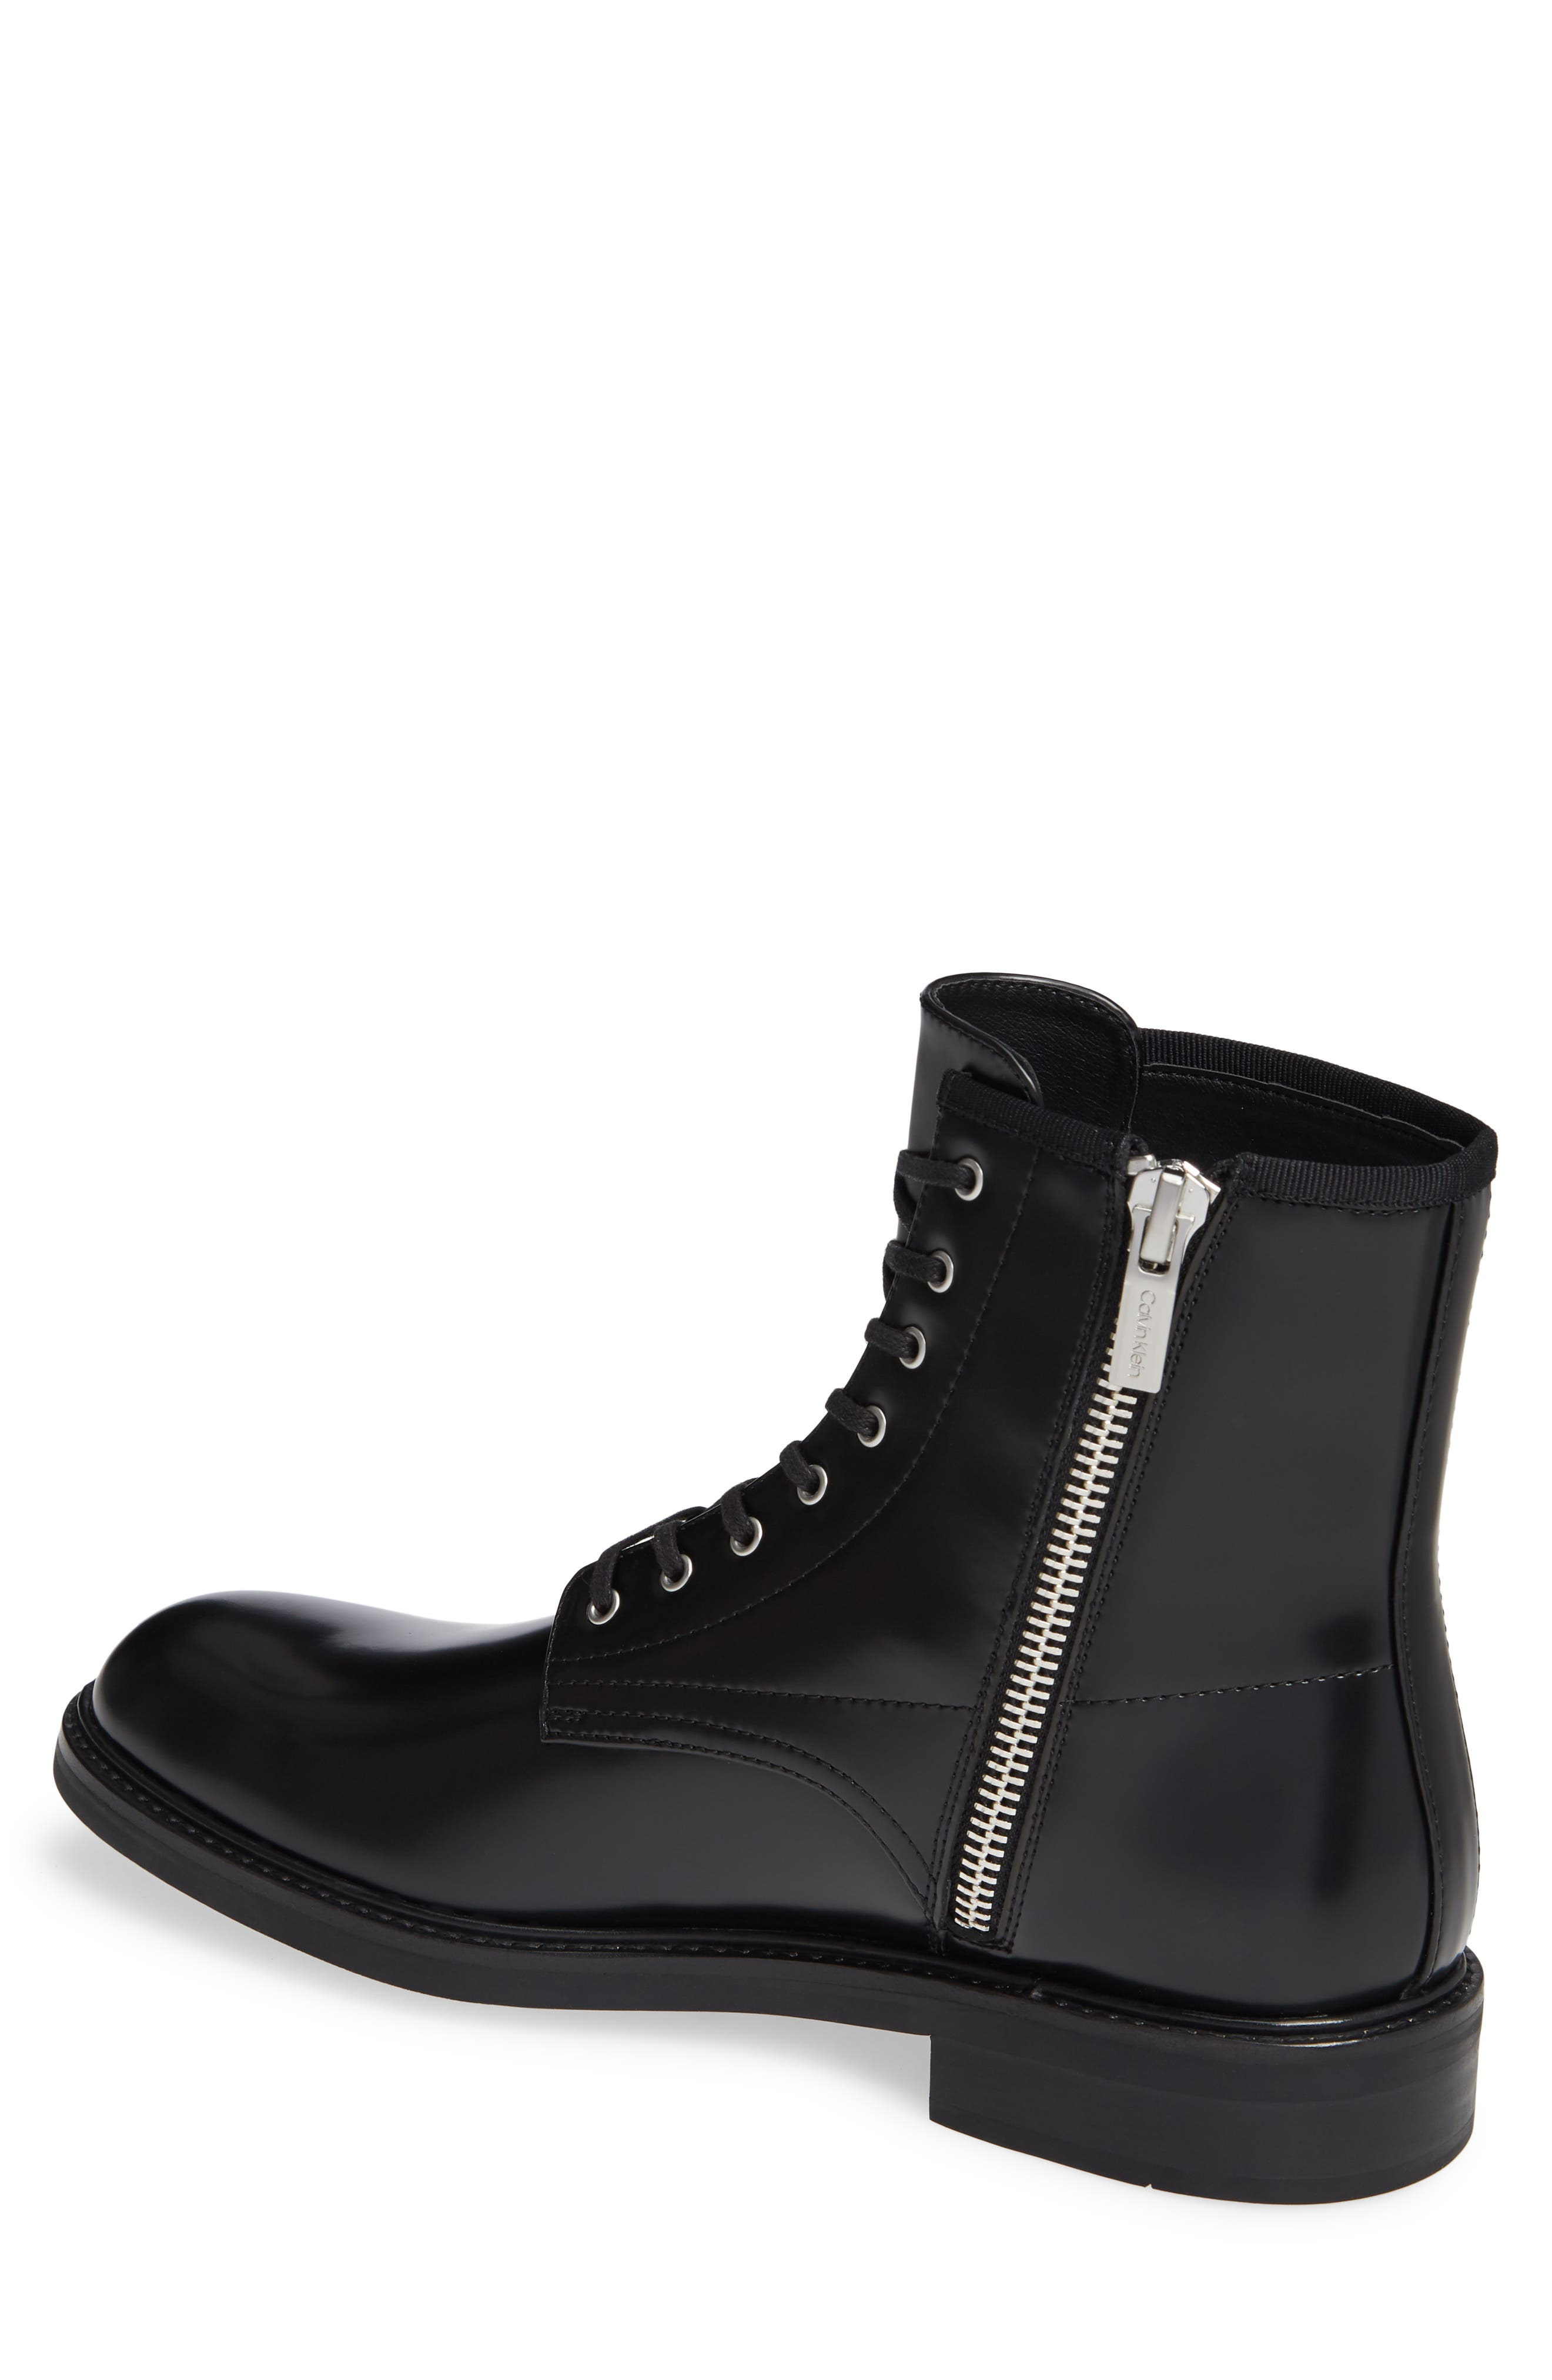 Keeler Combat Boot,                             Alternate thumbnail 2, color,                             BLACK LEATHER